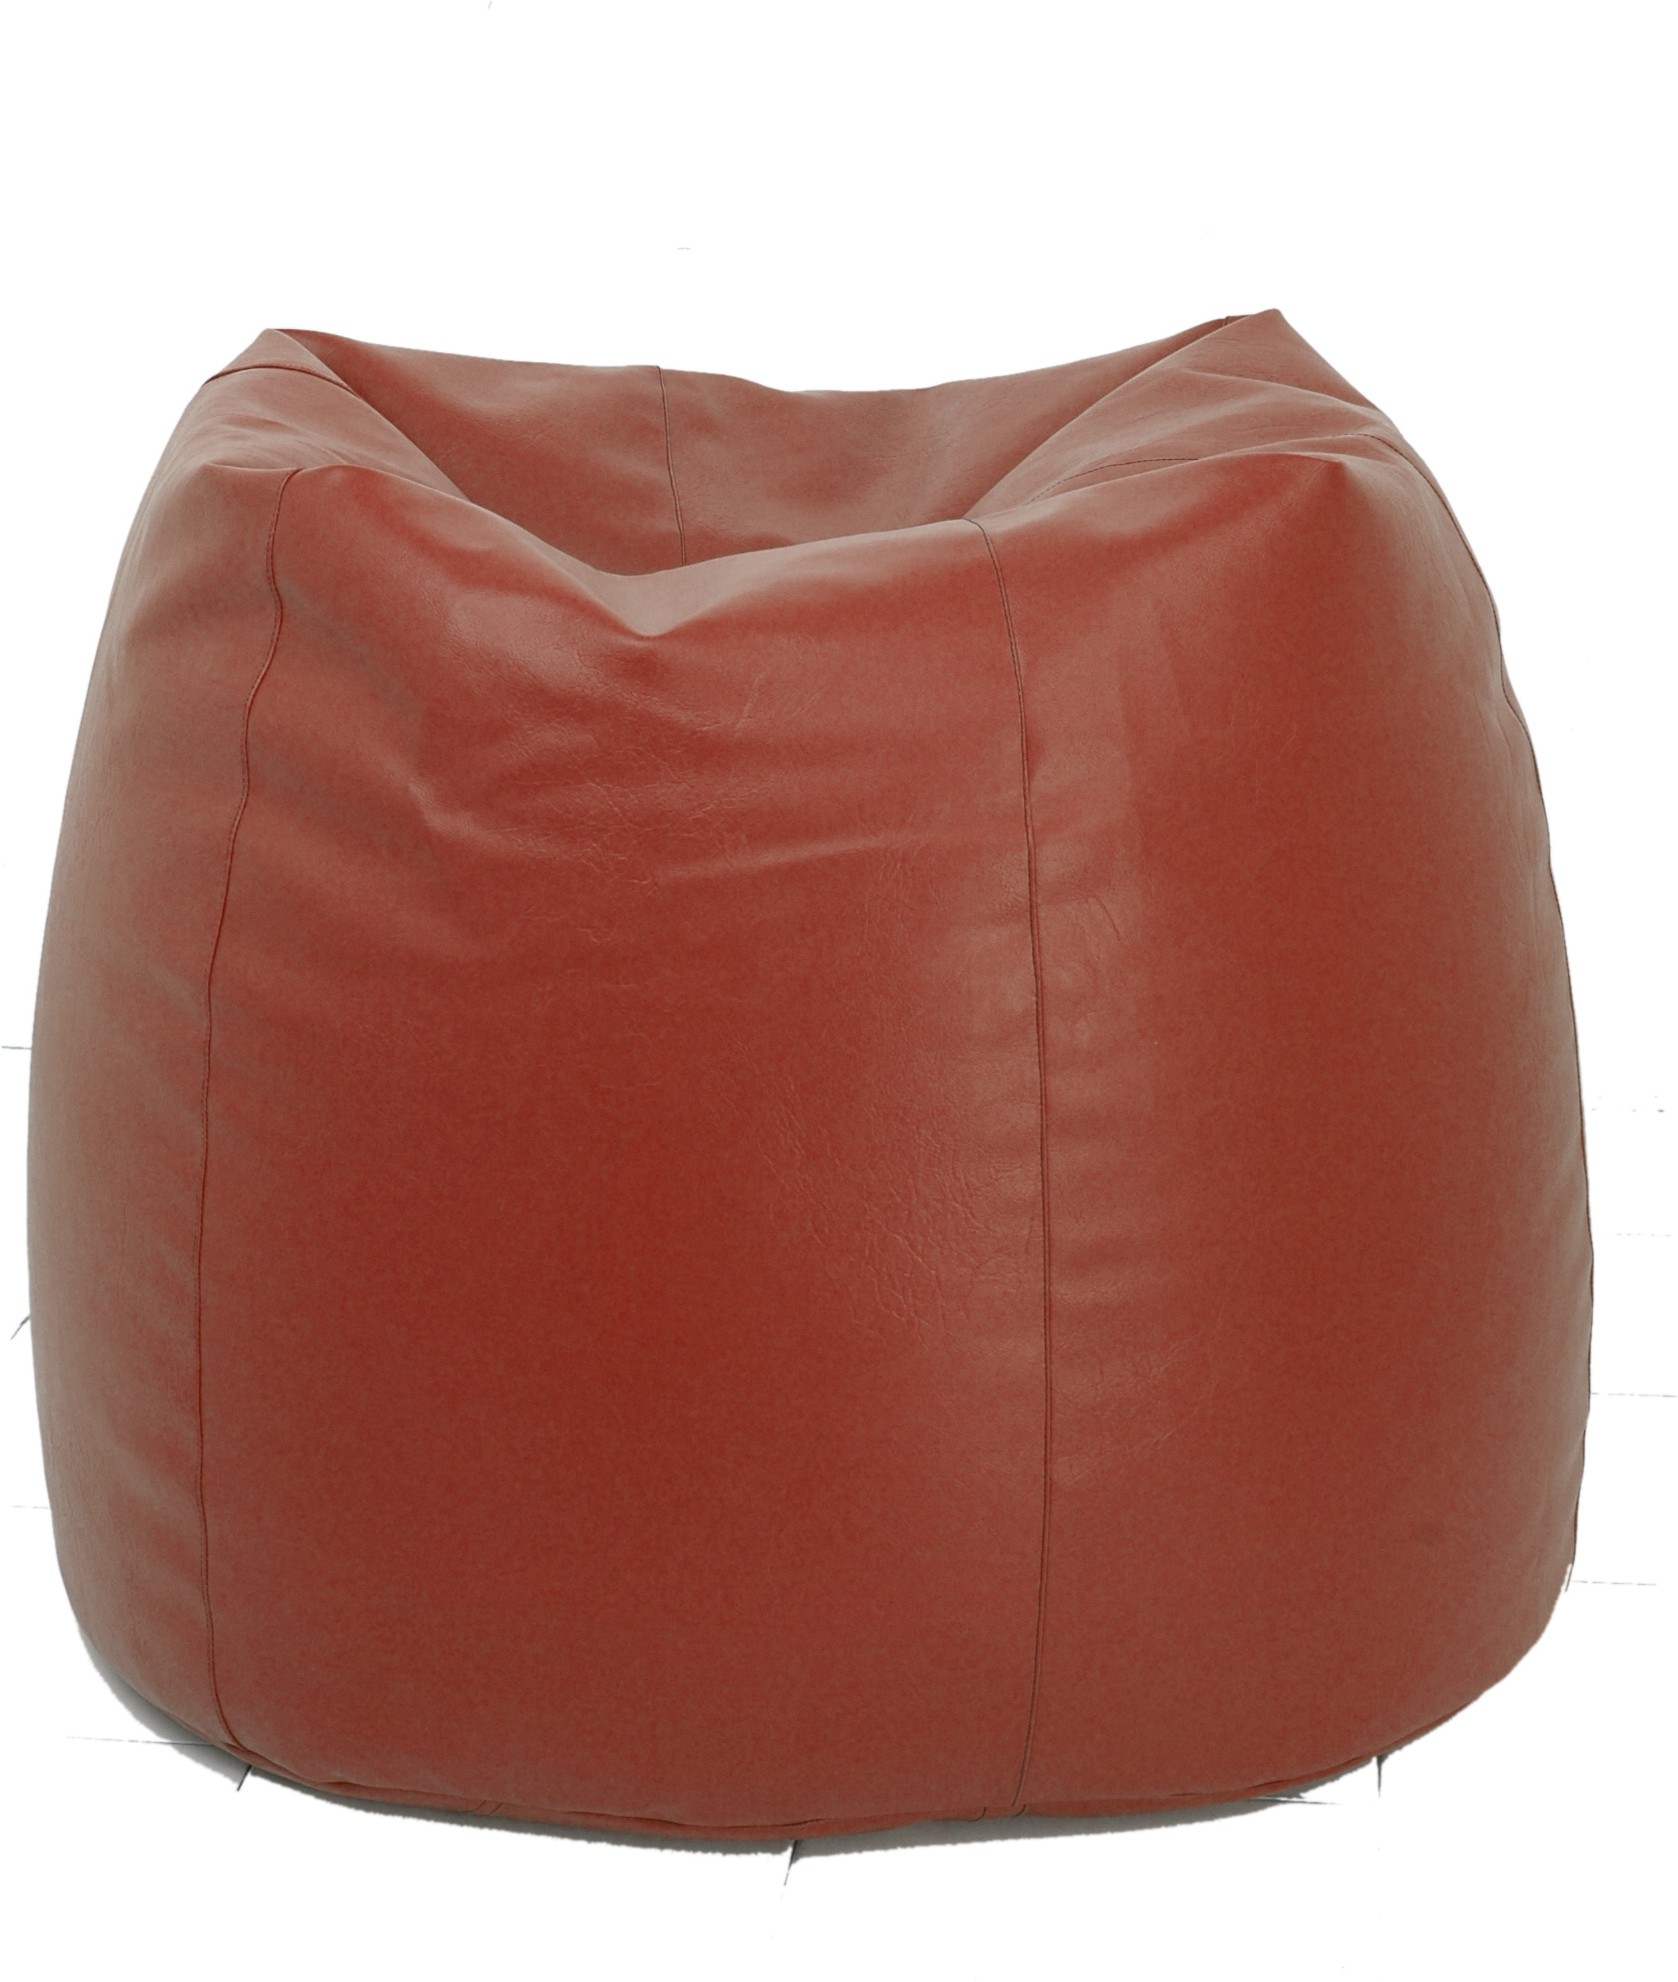 View Cosmo XL Bean Bag Cover(Tan) Furniture (Cosmo)